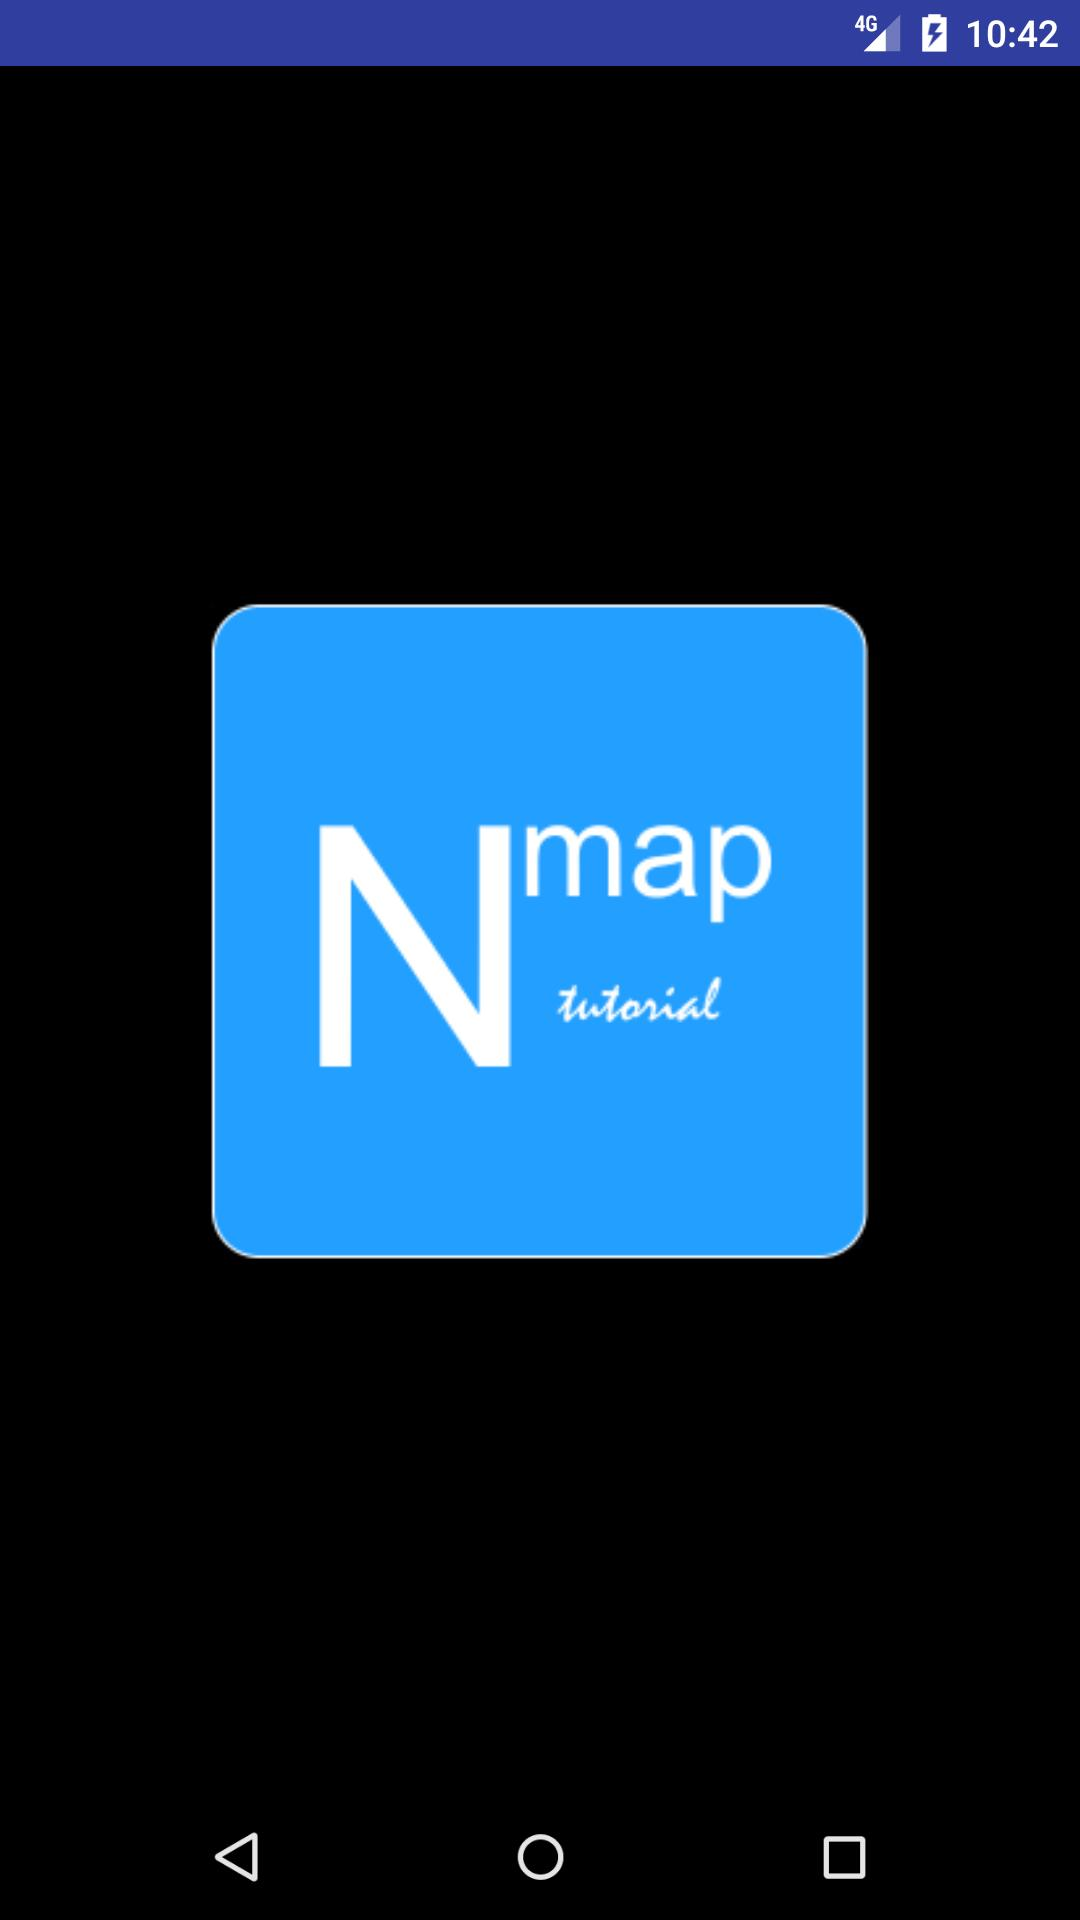 Nmap Tutorial for Android - APK Download